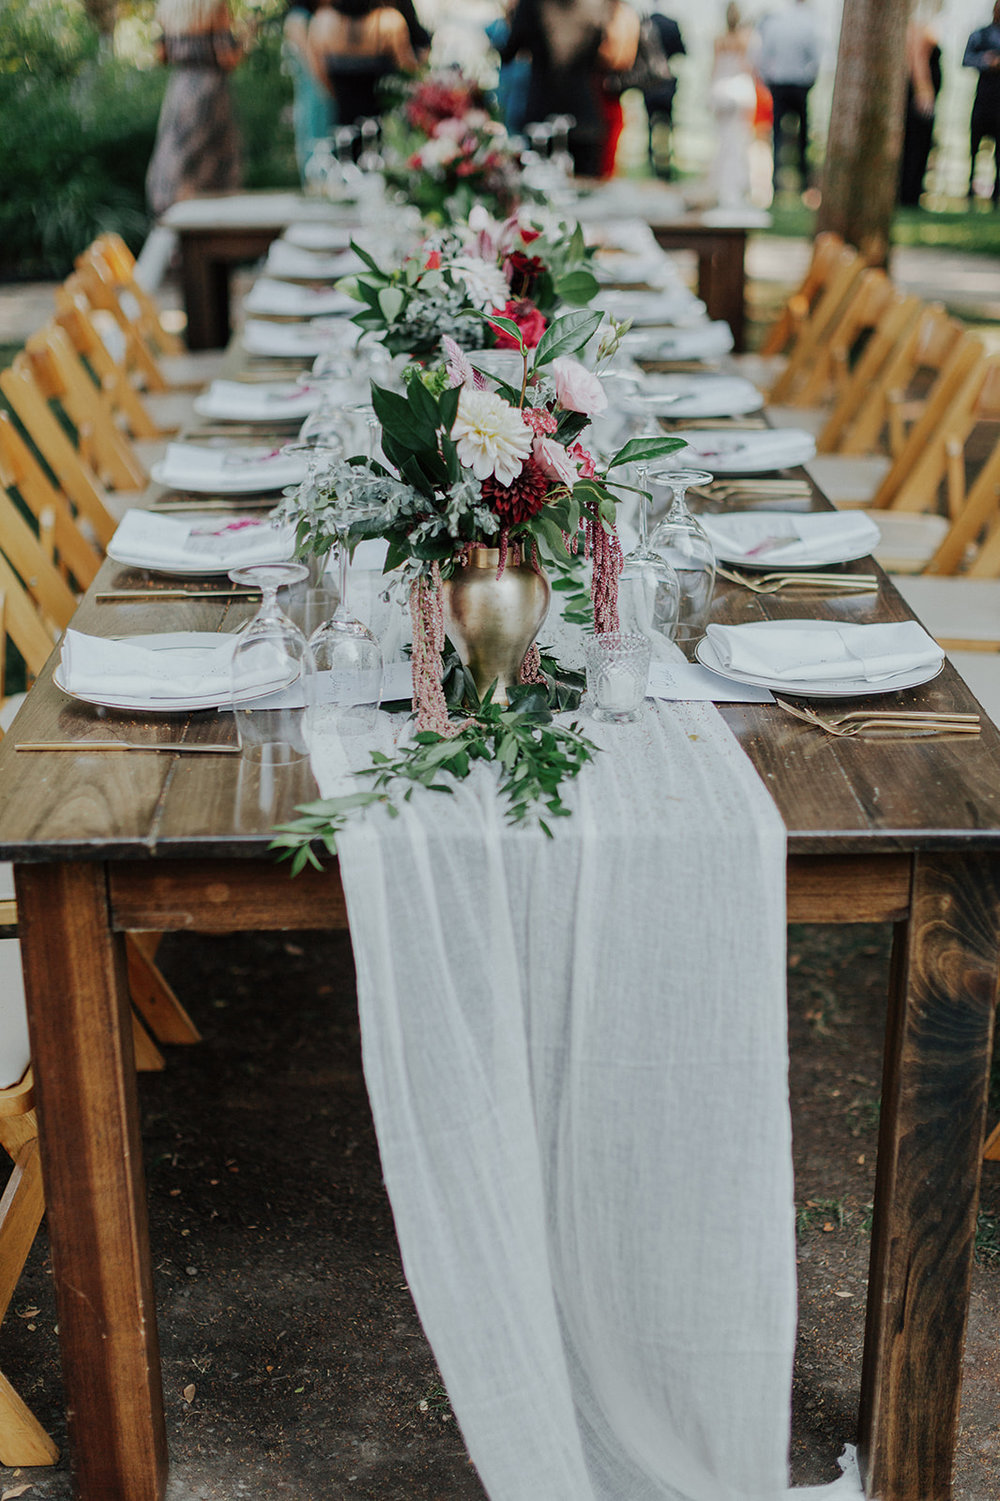 Bridal bouquets in gold vases and greenery runner for the head table. Healdsburg wedding flowers by Venn Floral at Ru's Farm photographed by Logan Cole.